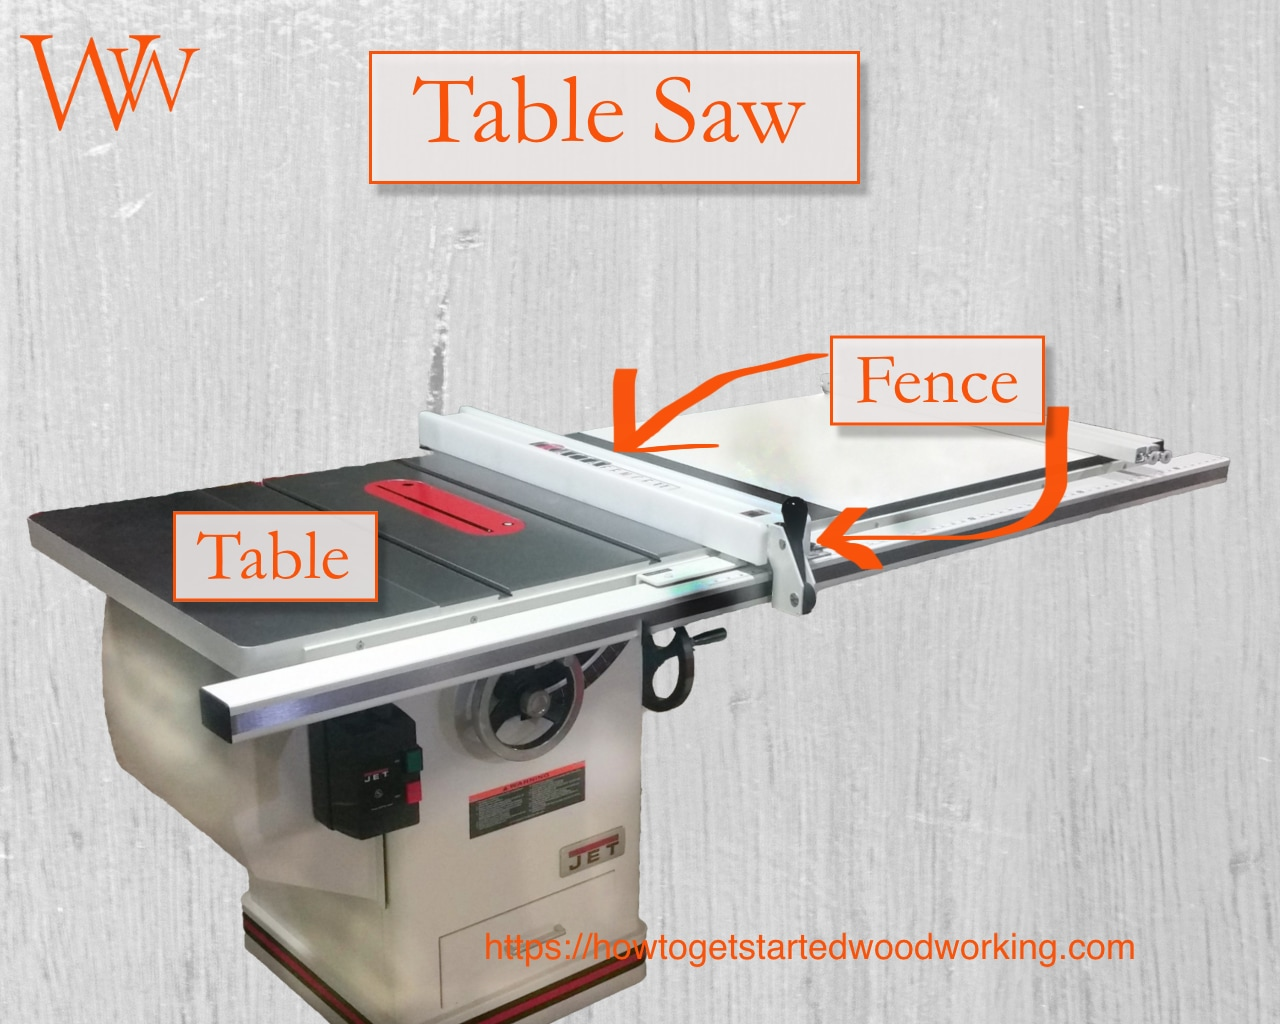 Table Saw Table and Fence